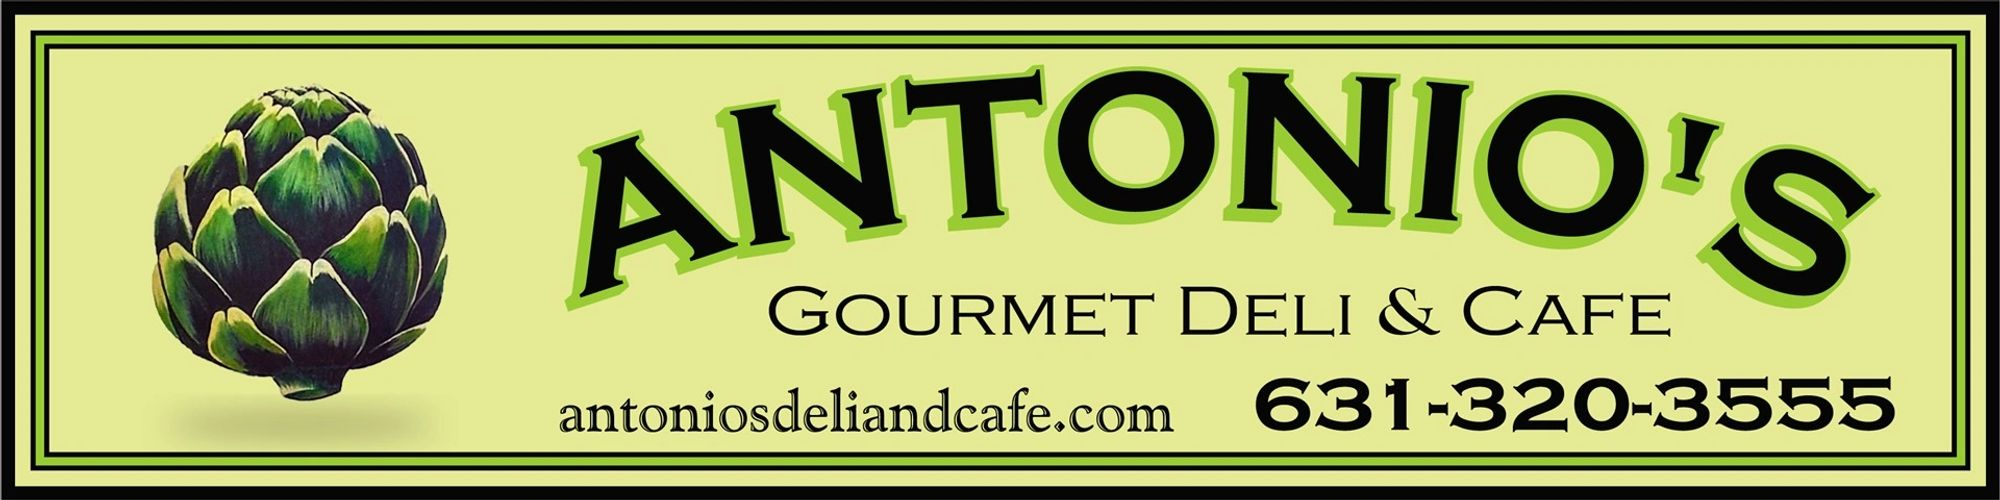 antoniosdeliandcafe.com, deli, food, lunch, breakfast, catering, food near me,  Medford, delivery